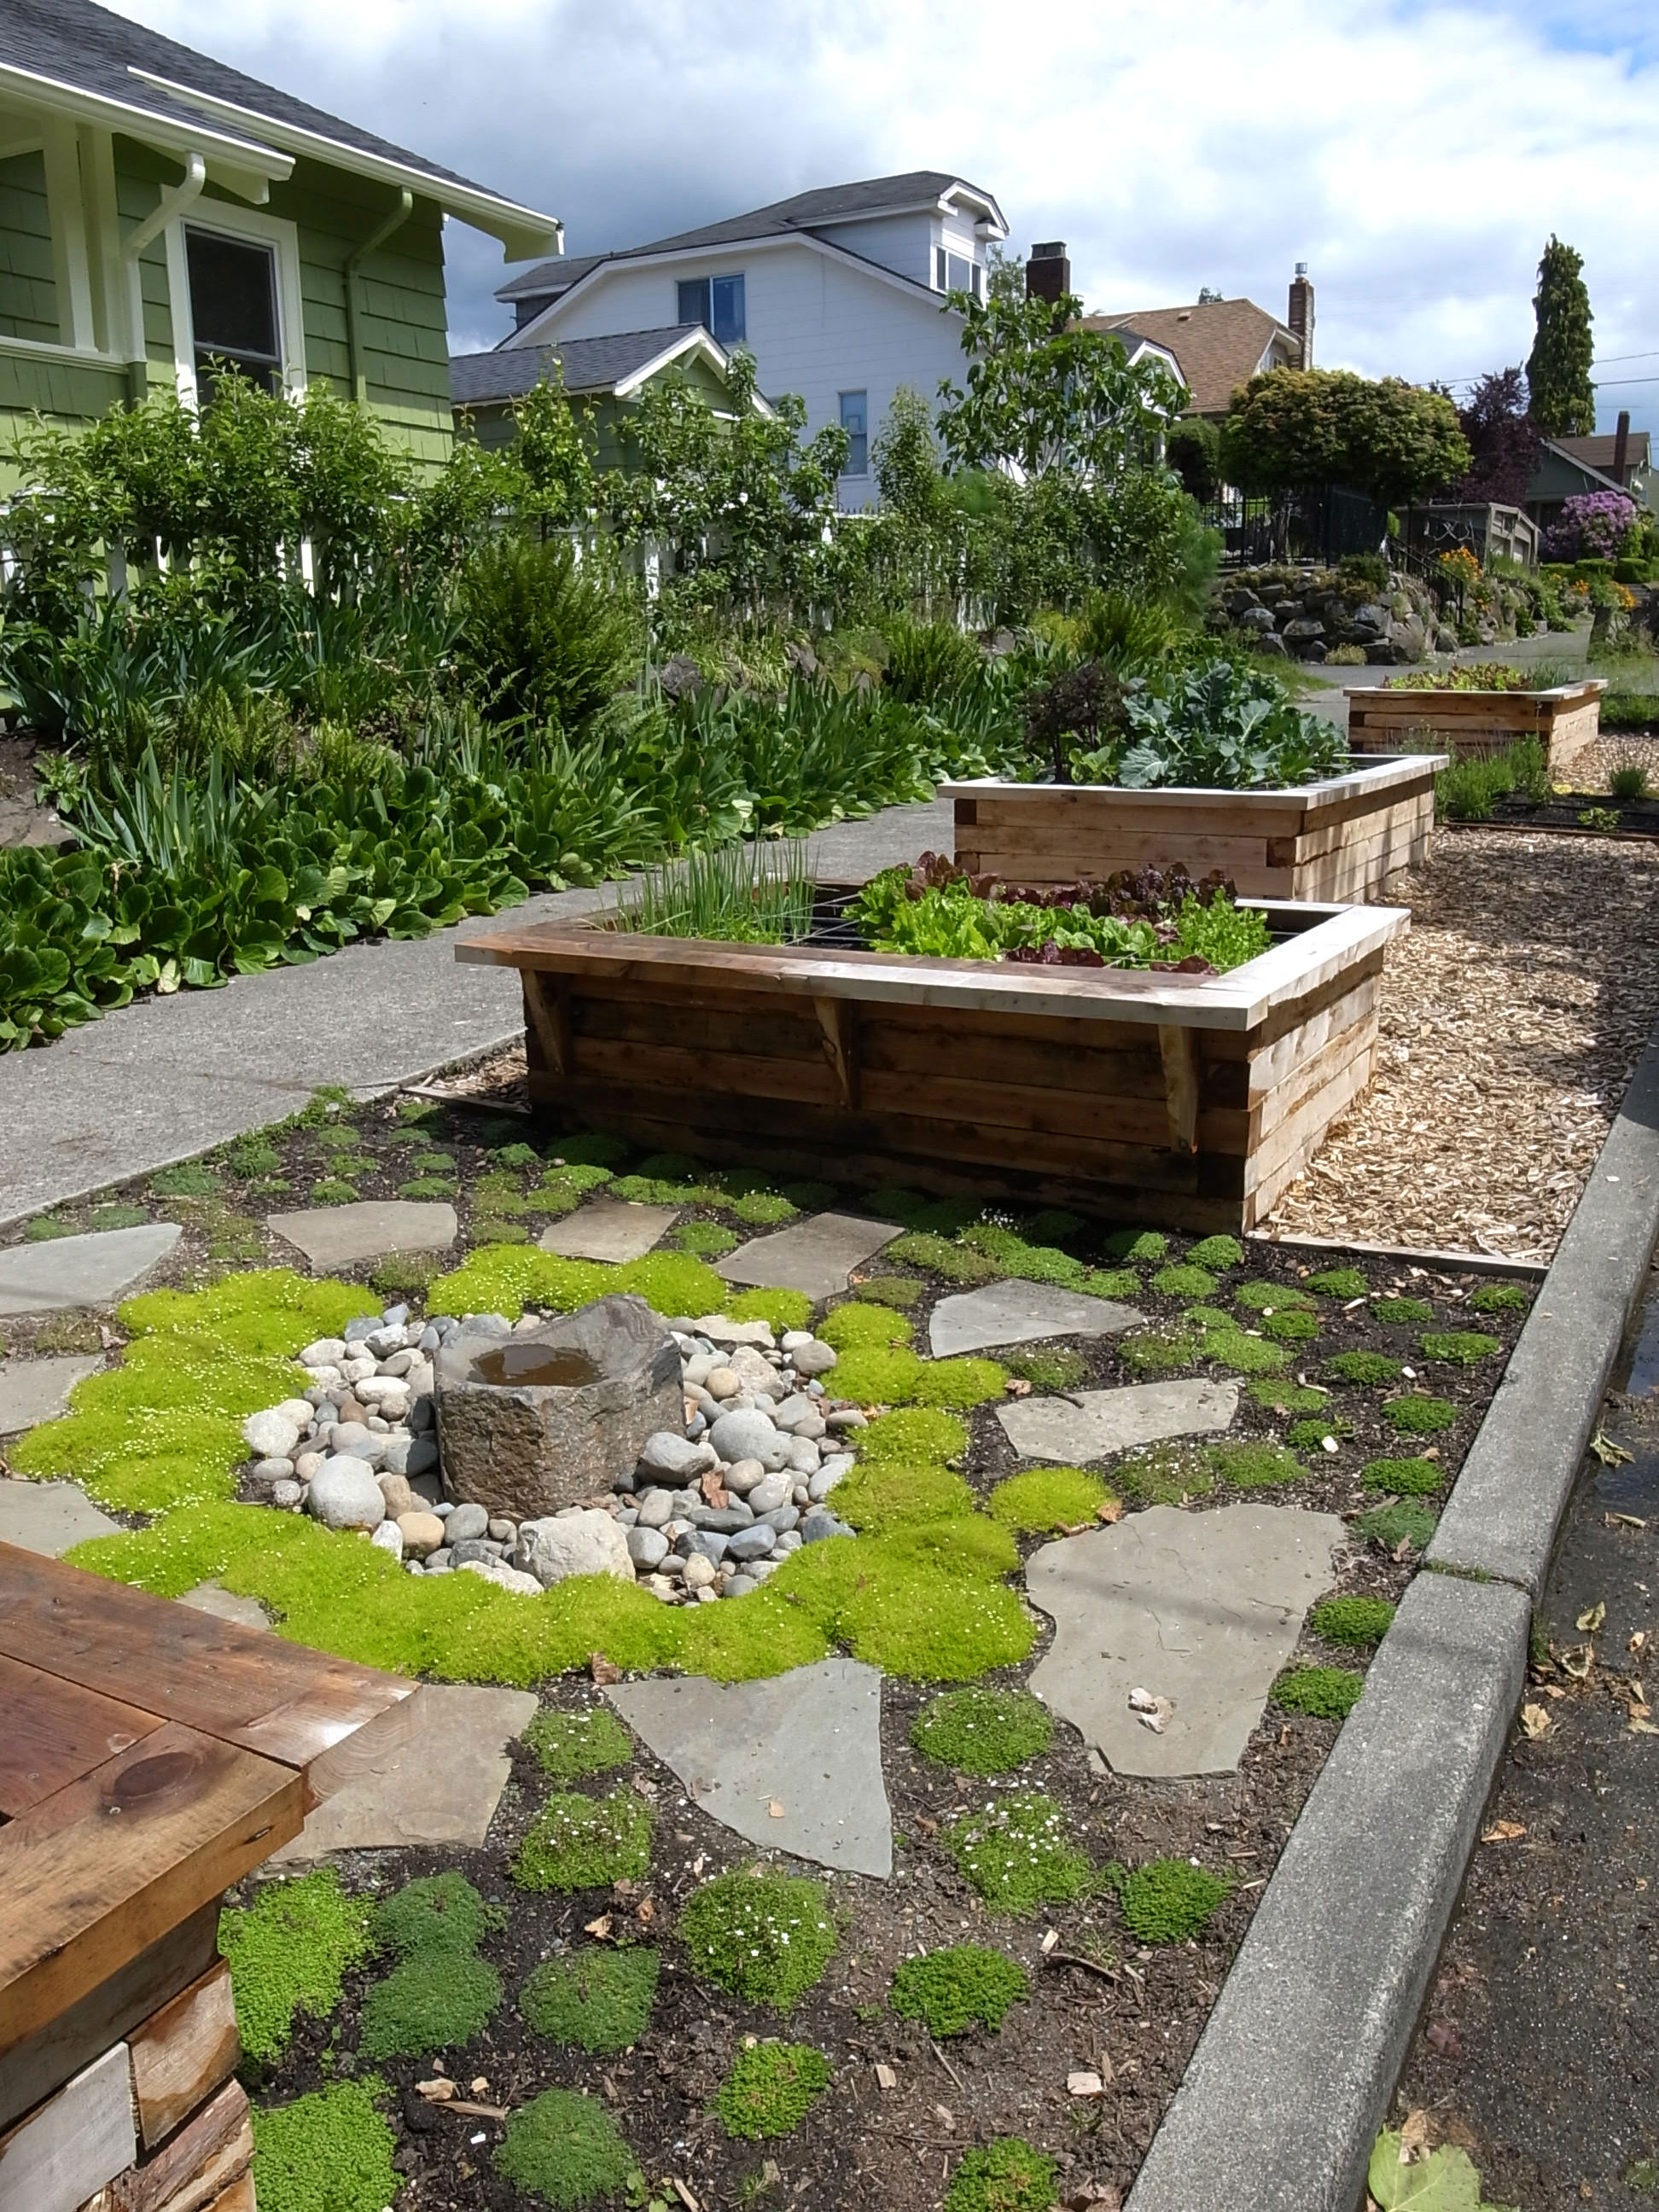 Edible Landscaping Ideas for Front Yard - Sunset - Sunset ... on Backyard Lawn Designs id=15449